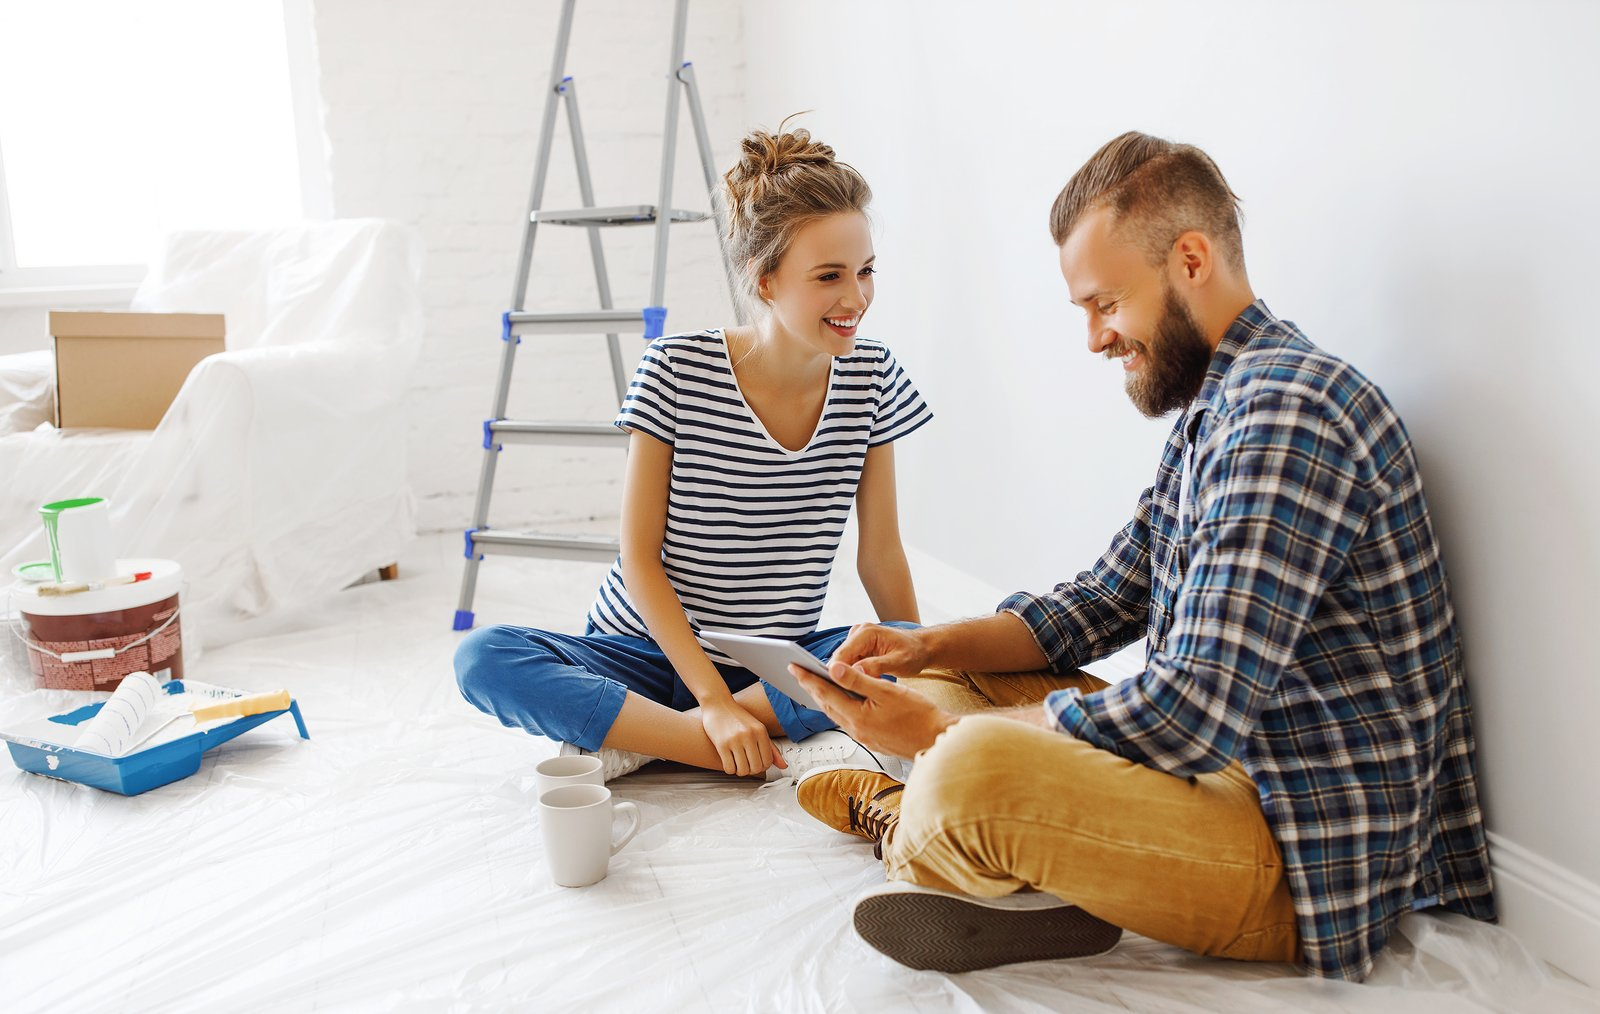 Simple Home DIY Projects to Upgrade Your Space